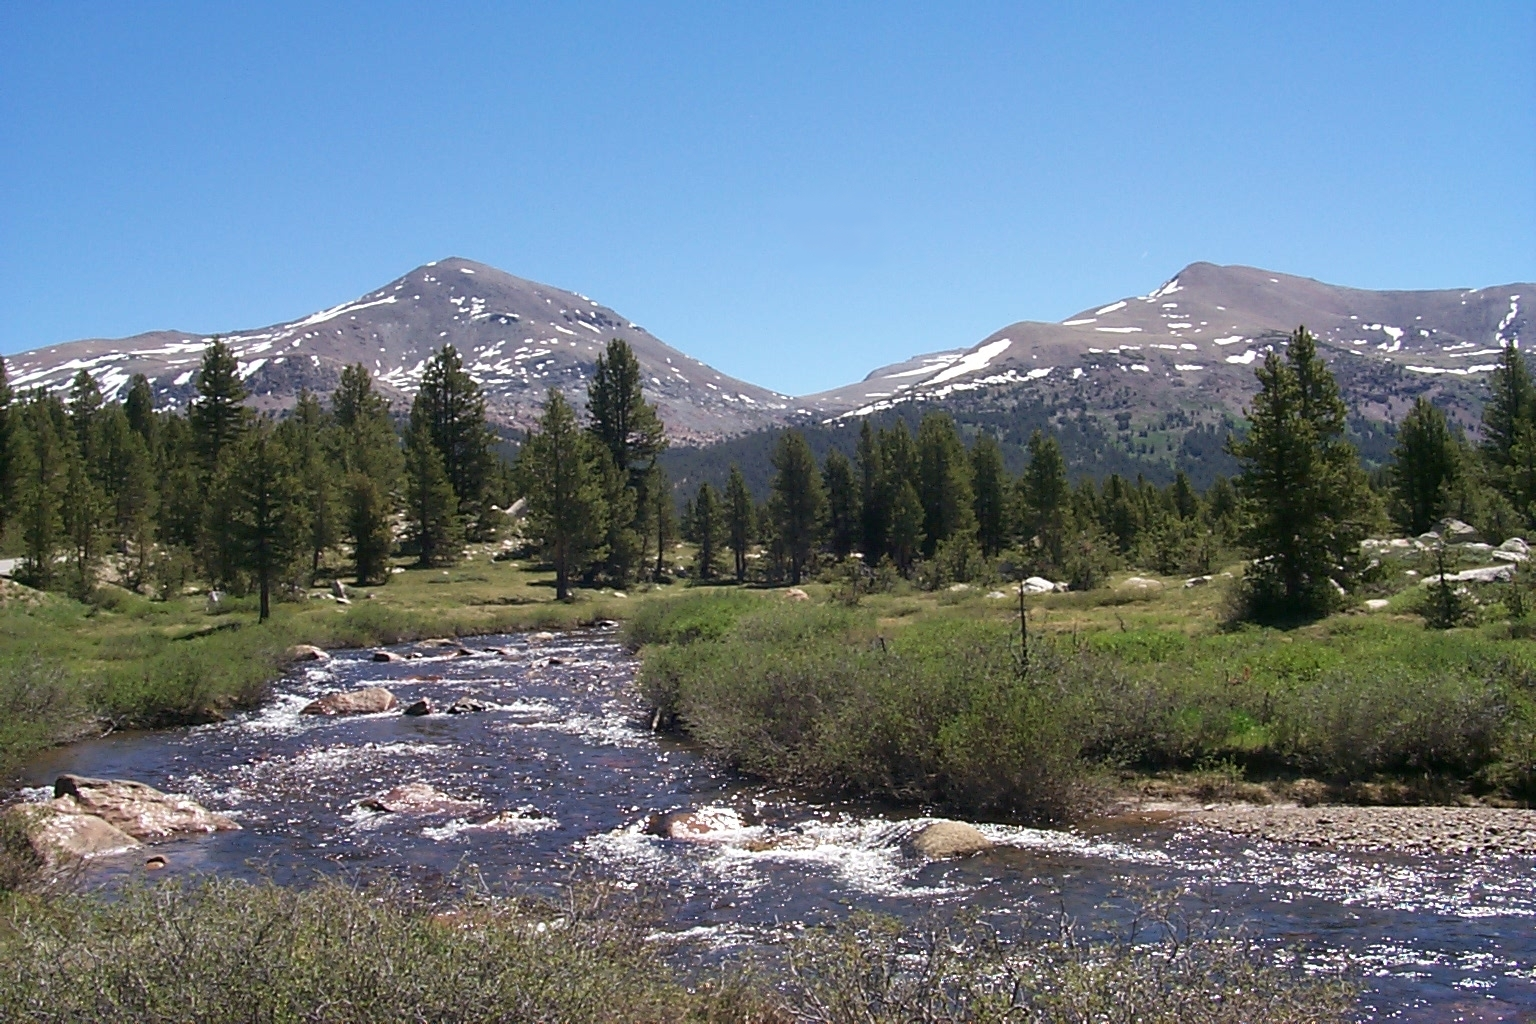 Dana Meadows in Yosemite, showing the headwate...